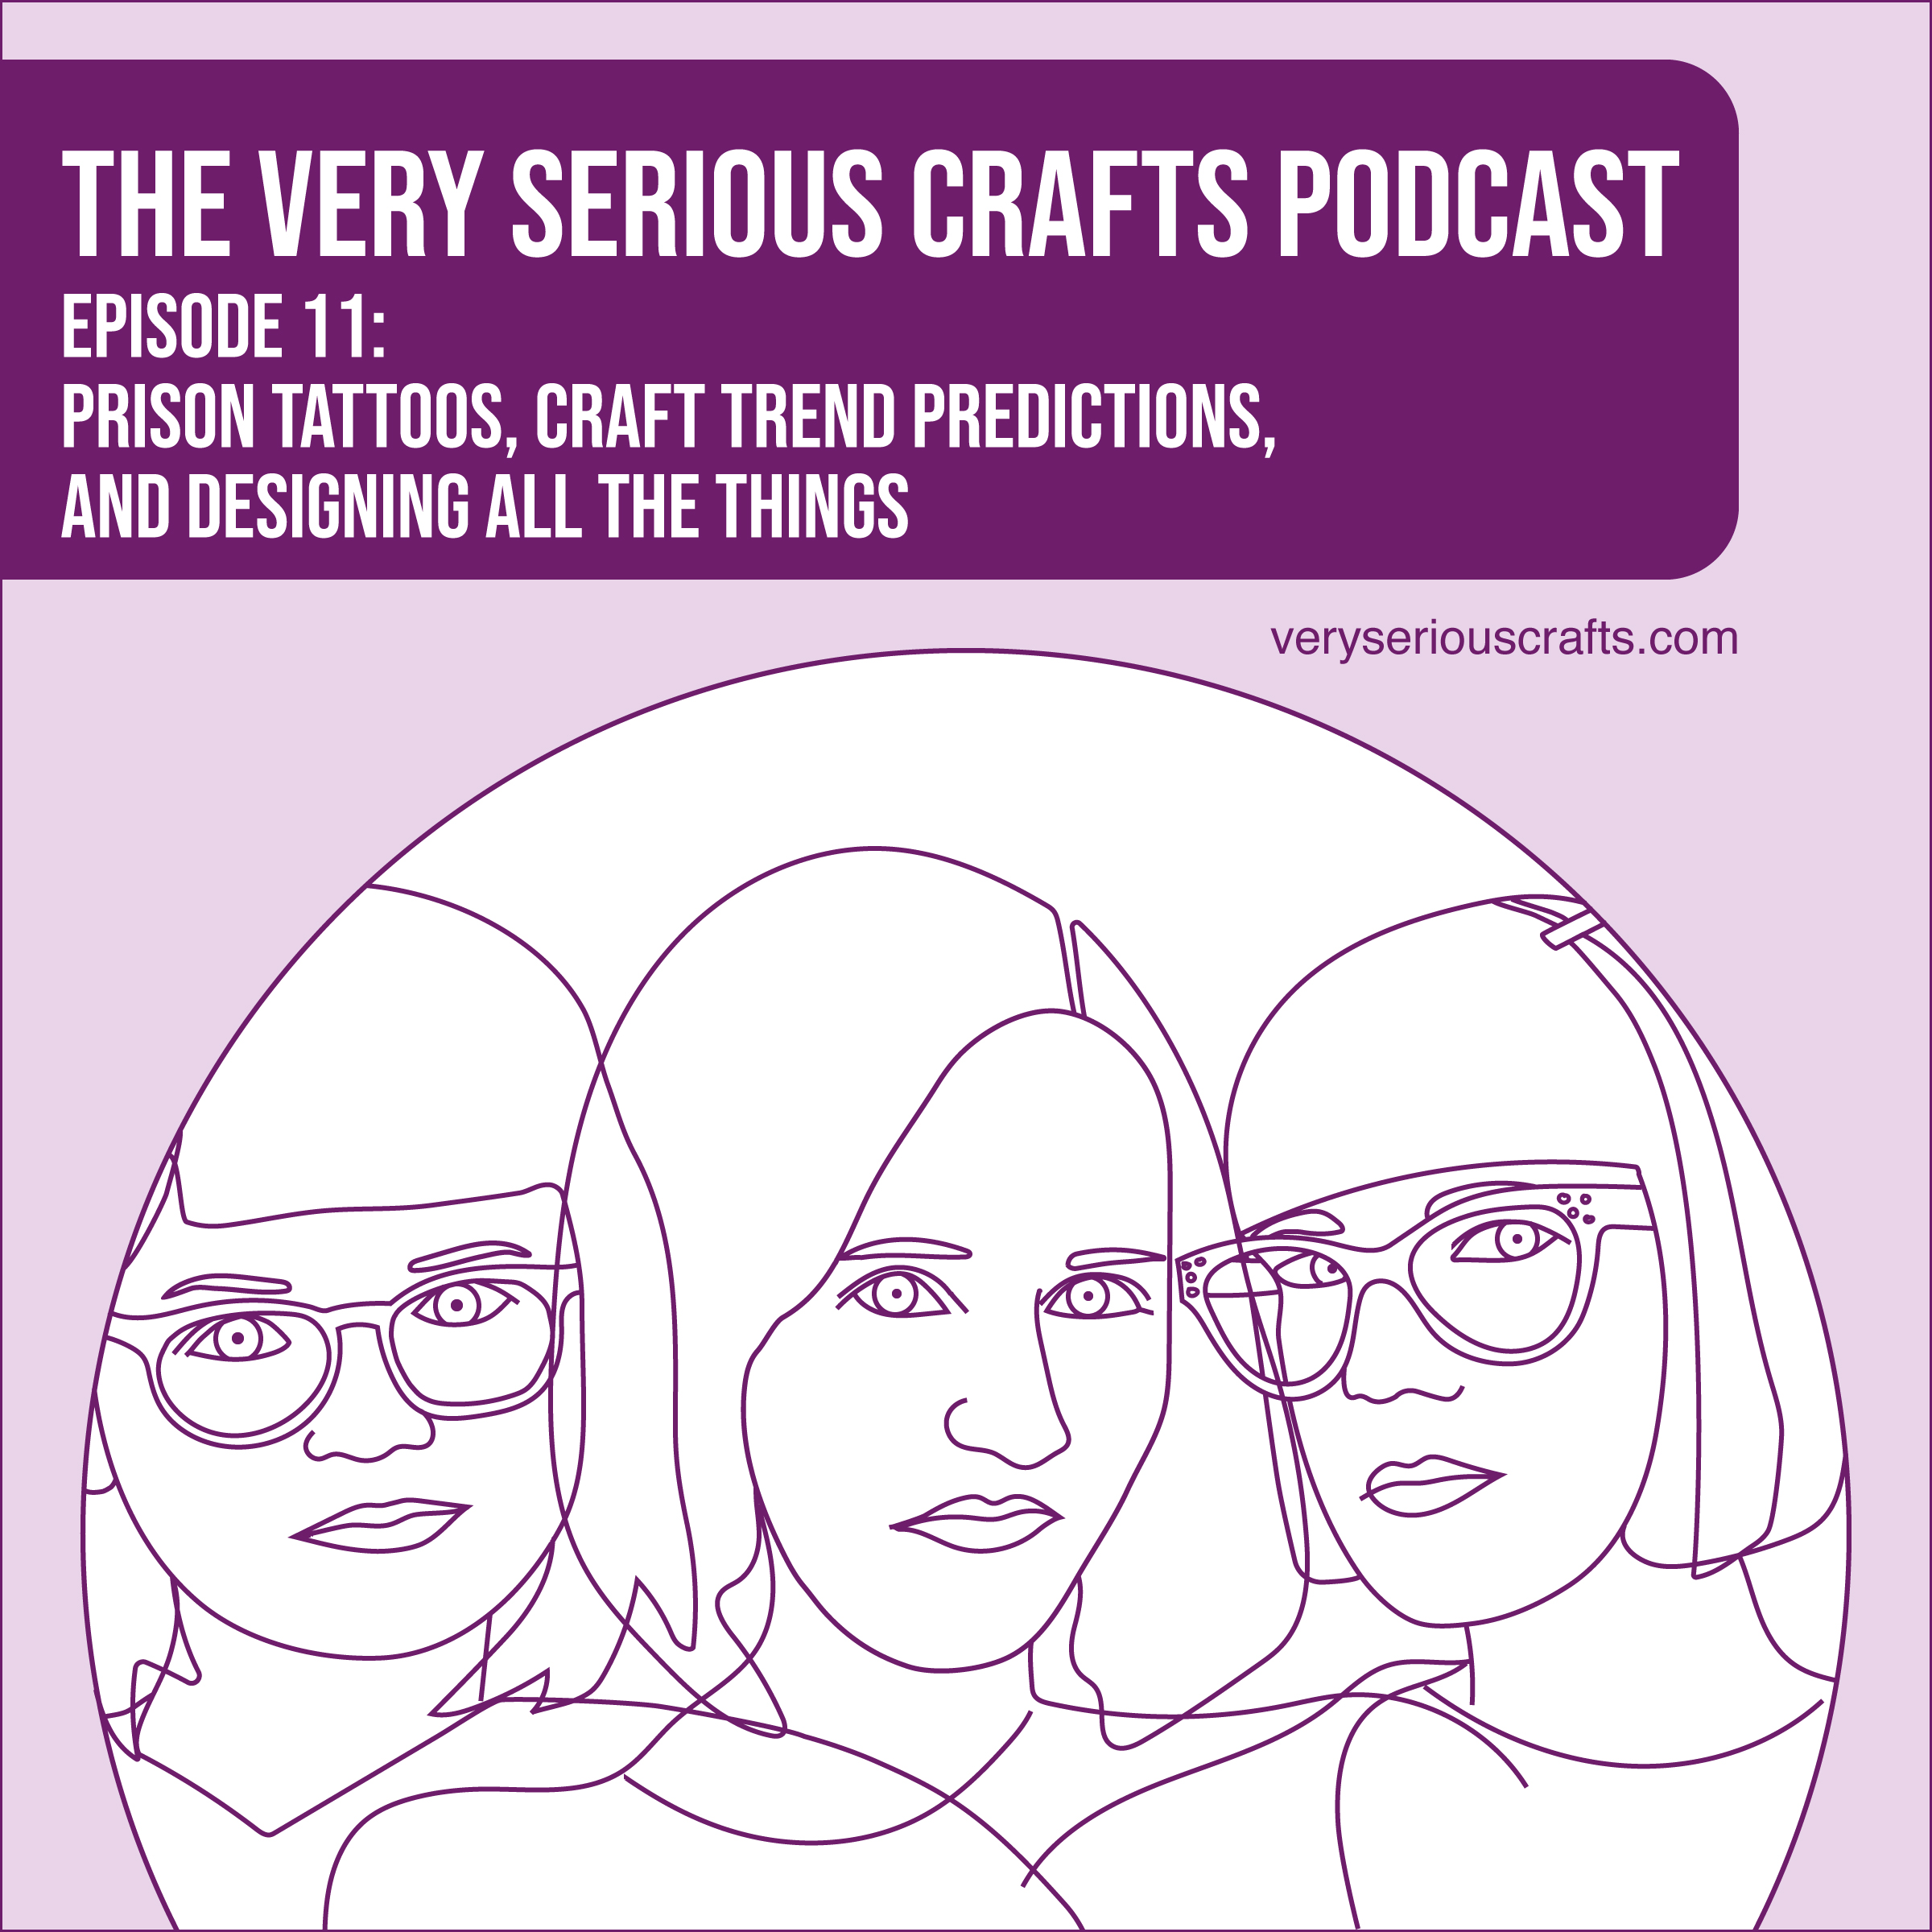 S1E11: Prison Tattoos, Craft Trend Predictions, and Designing All the Things